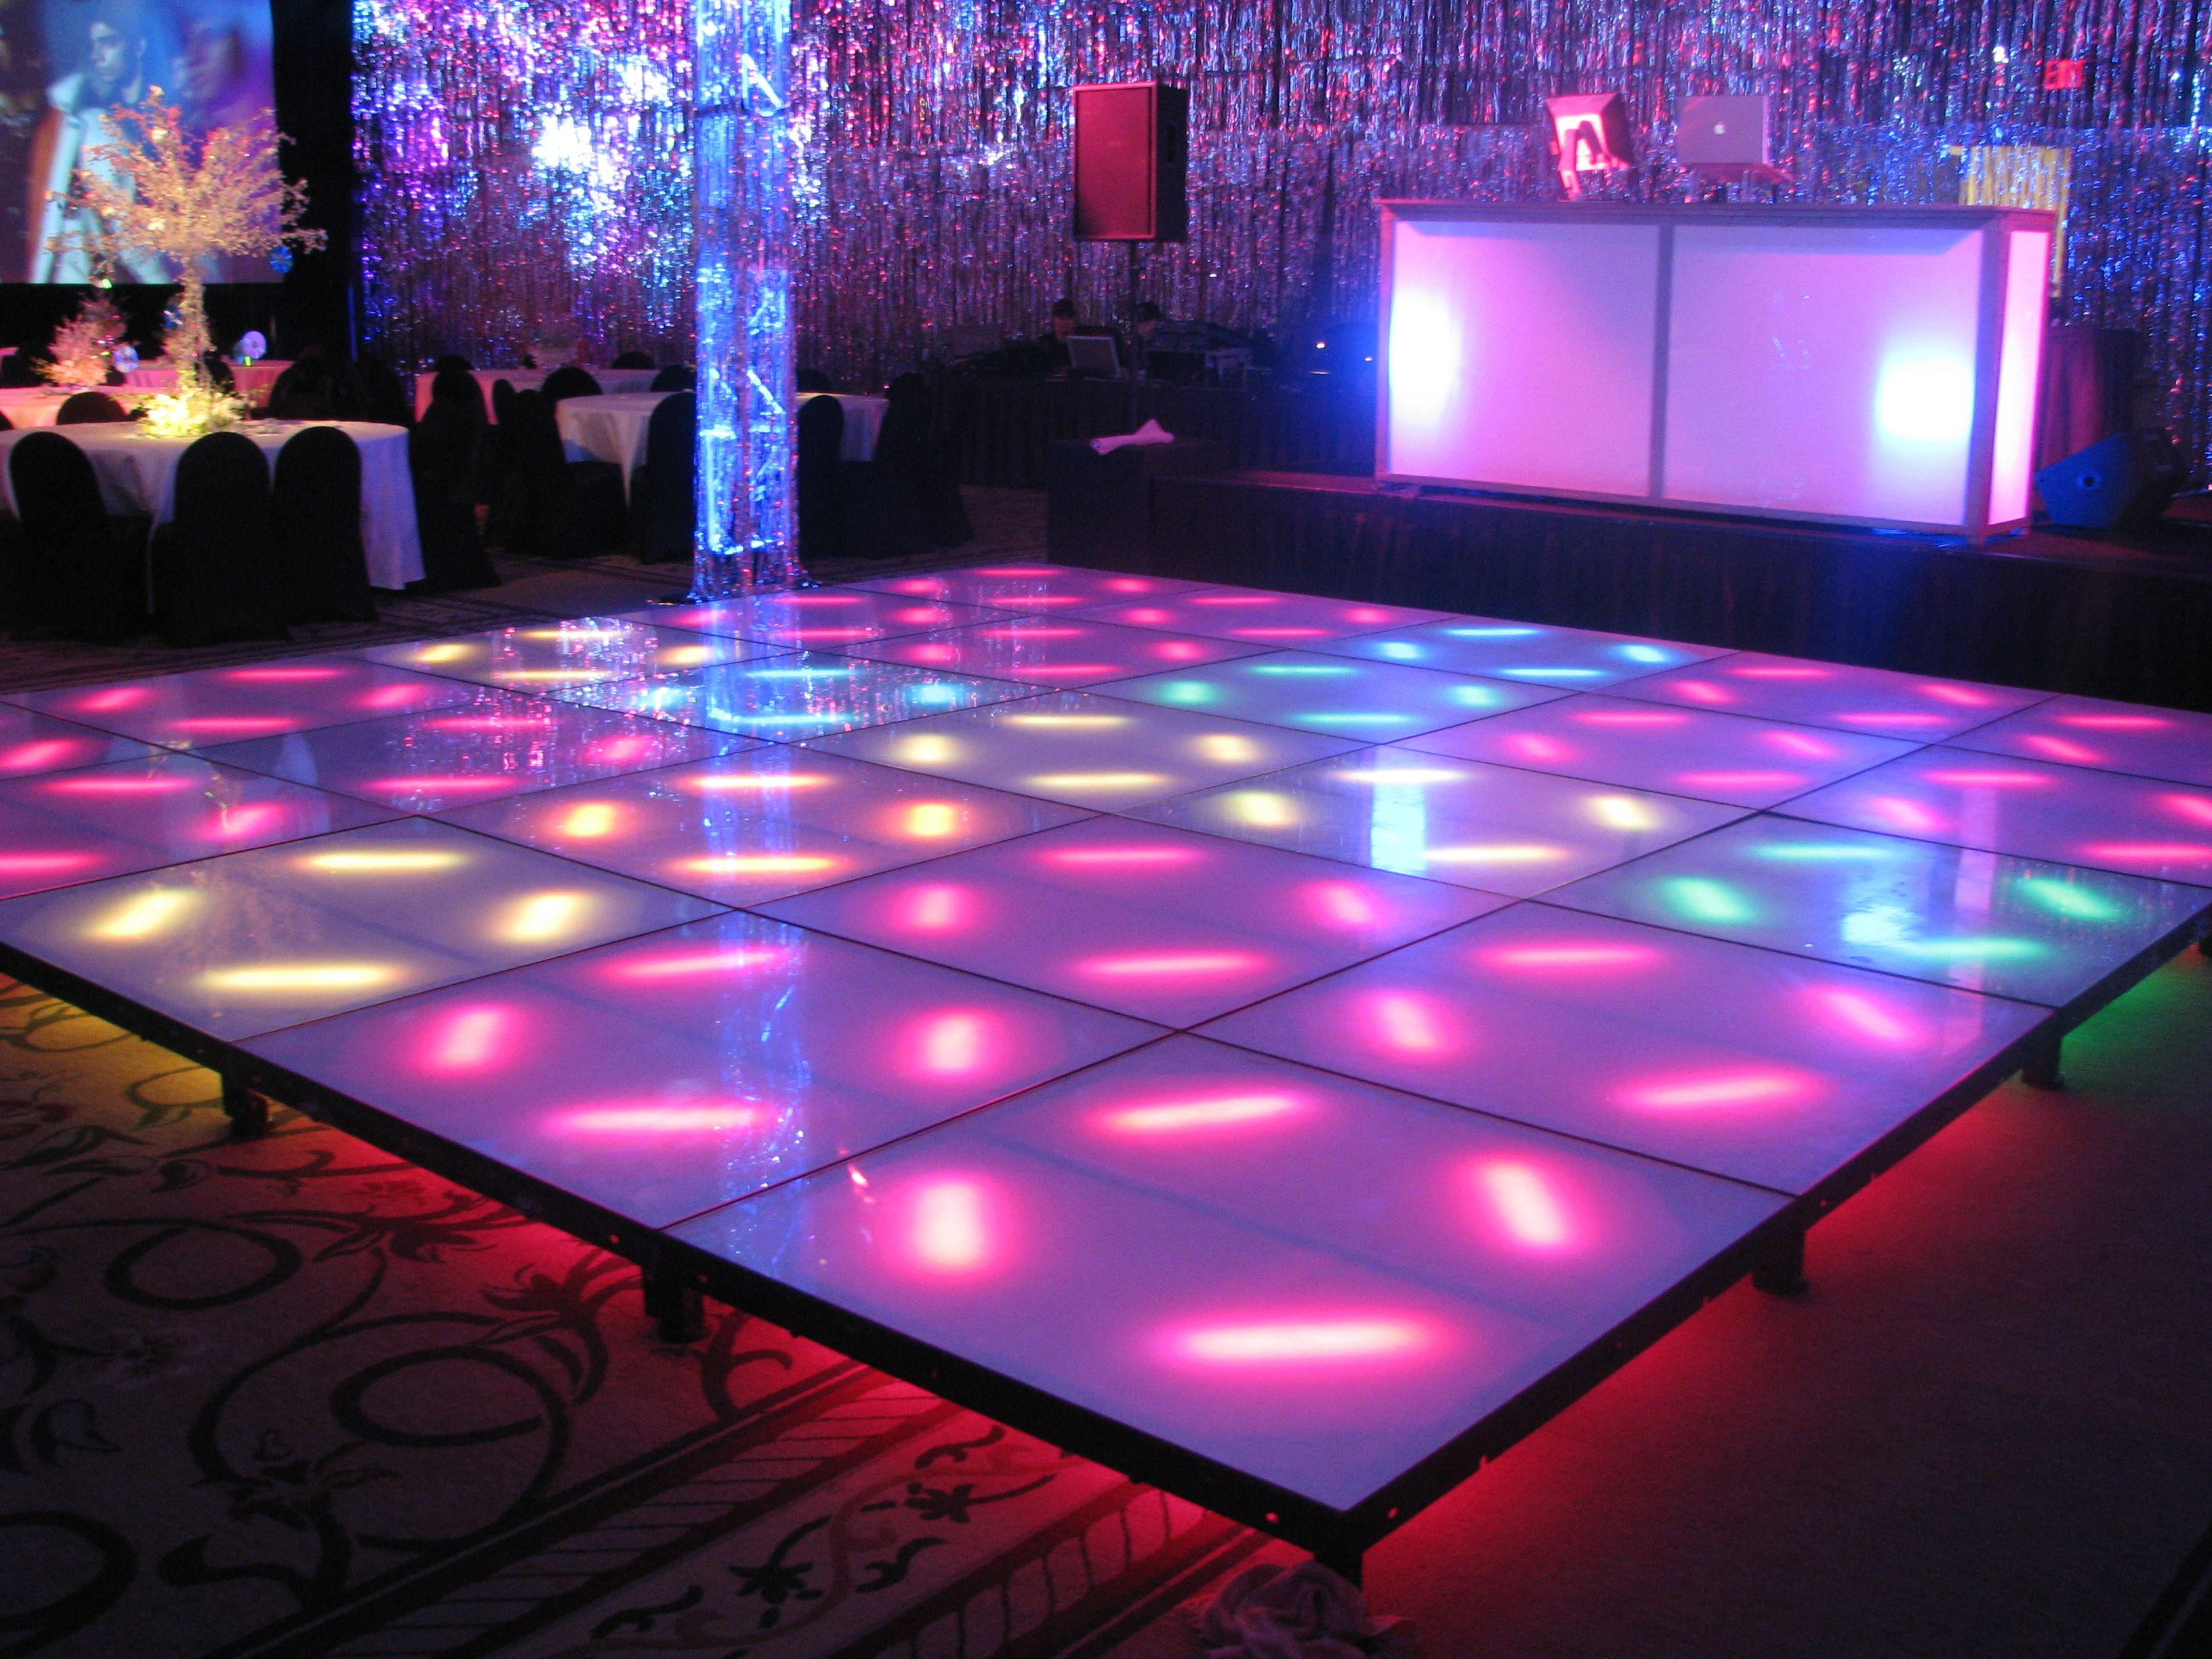 led dance floor theme night club pinterest led dance and wedding things. Black Bedroom Furniture Sets. Home Design Ideas